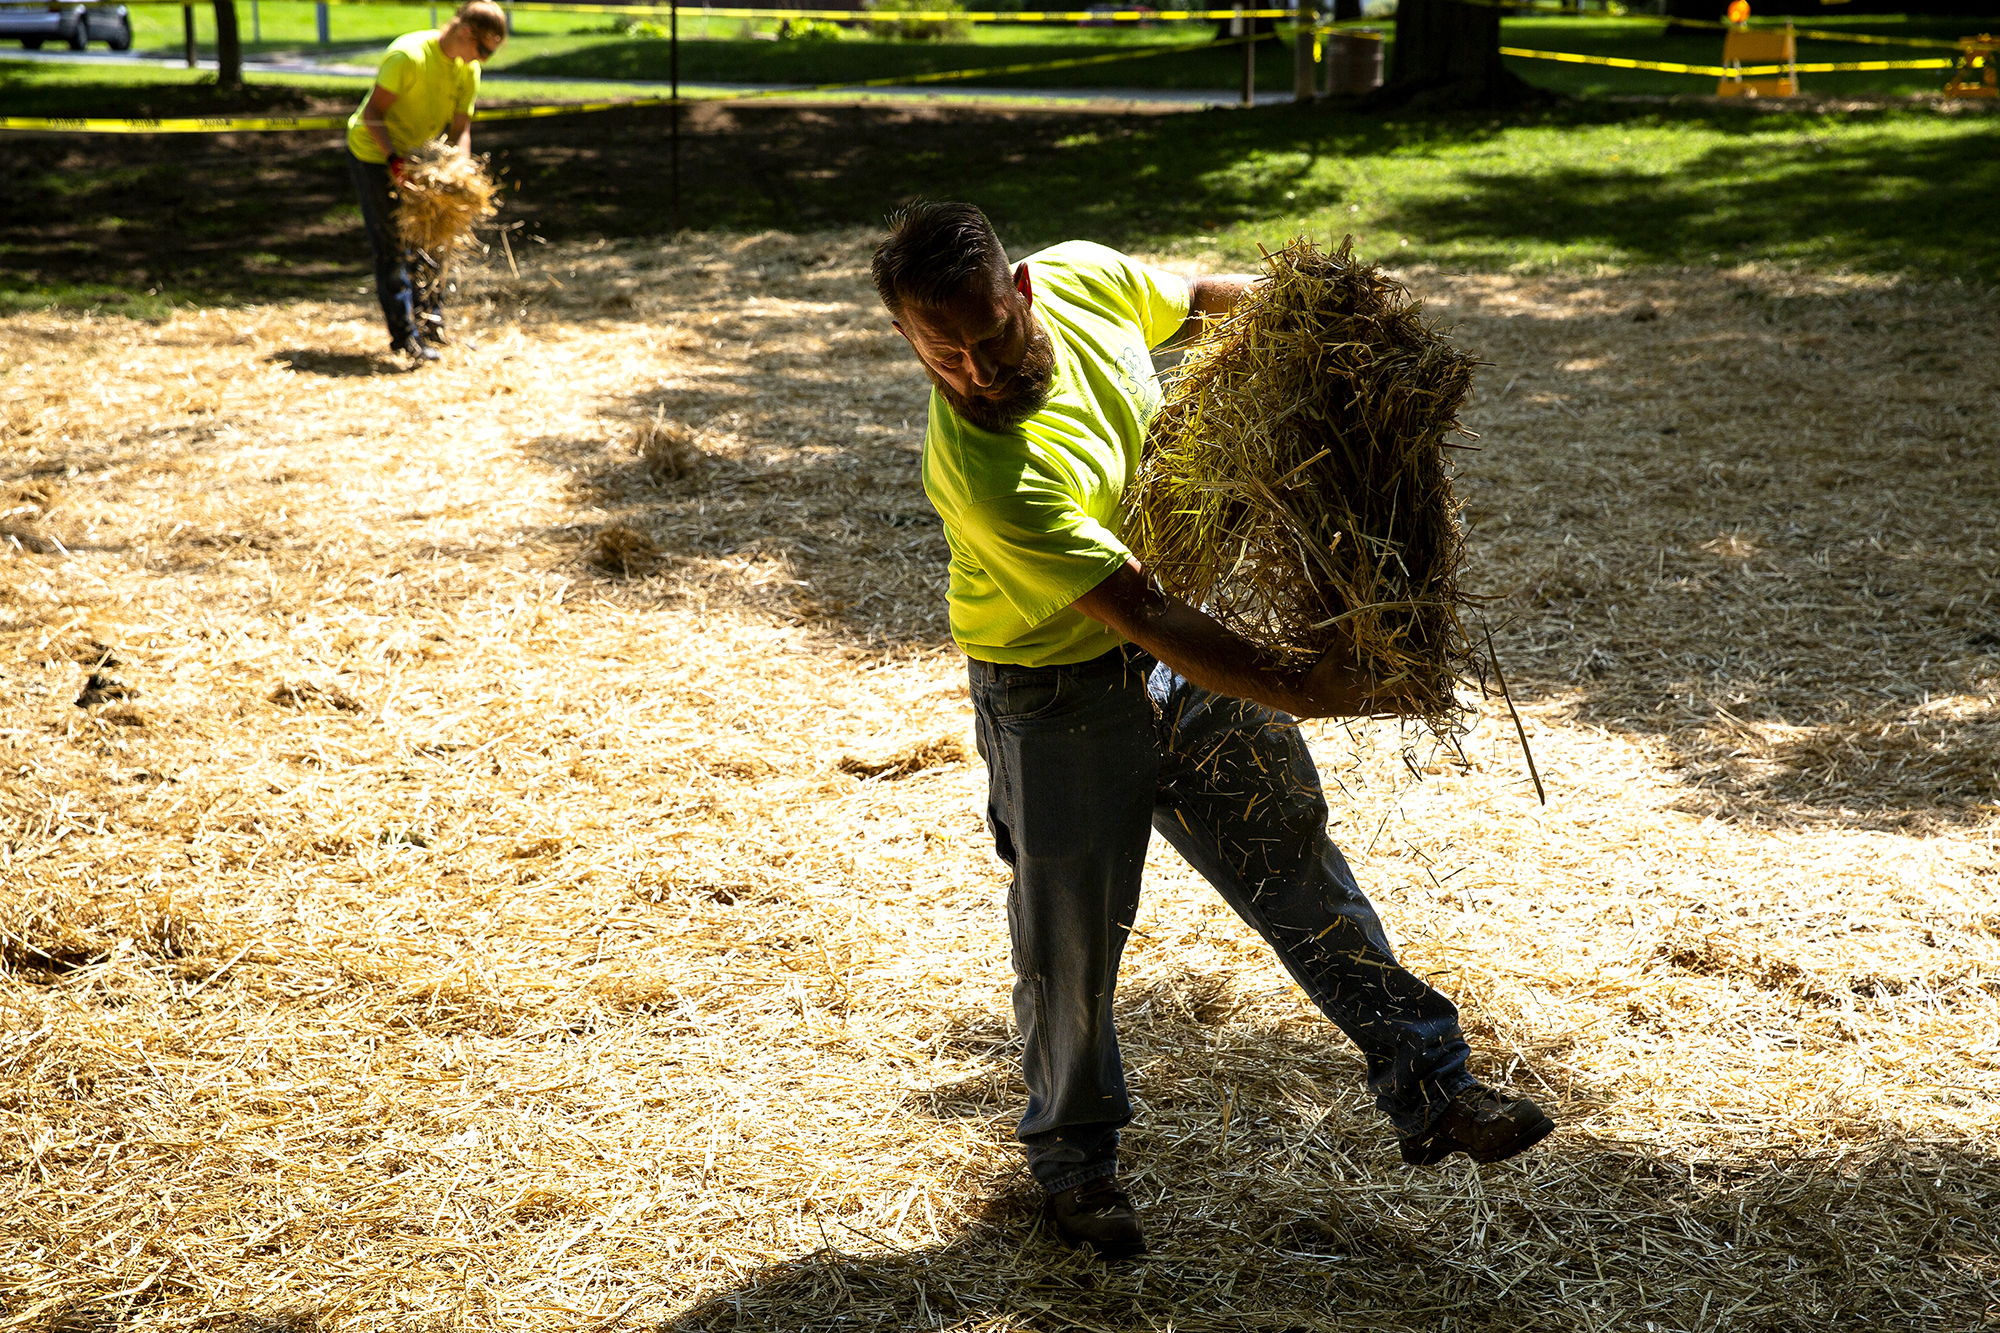 Tim Wagoner, foreground, and Tyler Landess, Springfield Park District employees, spread straw over grass seed near a new walking path under construction in Washington Park at MacArthur Boulevard Thursday, Aug. 23, 2018 in Springfield, Ill. The new concrete path replaces an old asphalt one that allows joggers and walkers a place to turn without using the sidewalk along MacArthur. It should be finished by the end of next week. [Rich Saal/The State Journal-Register]